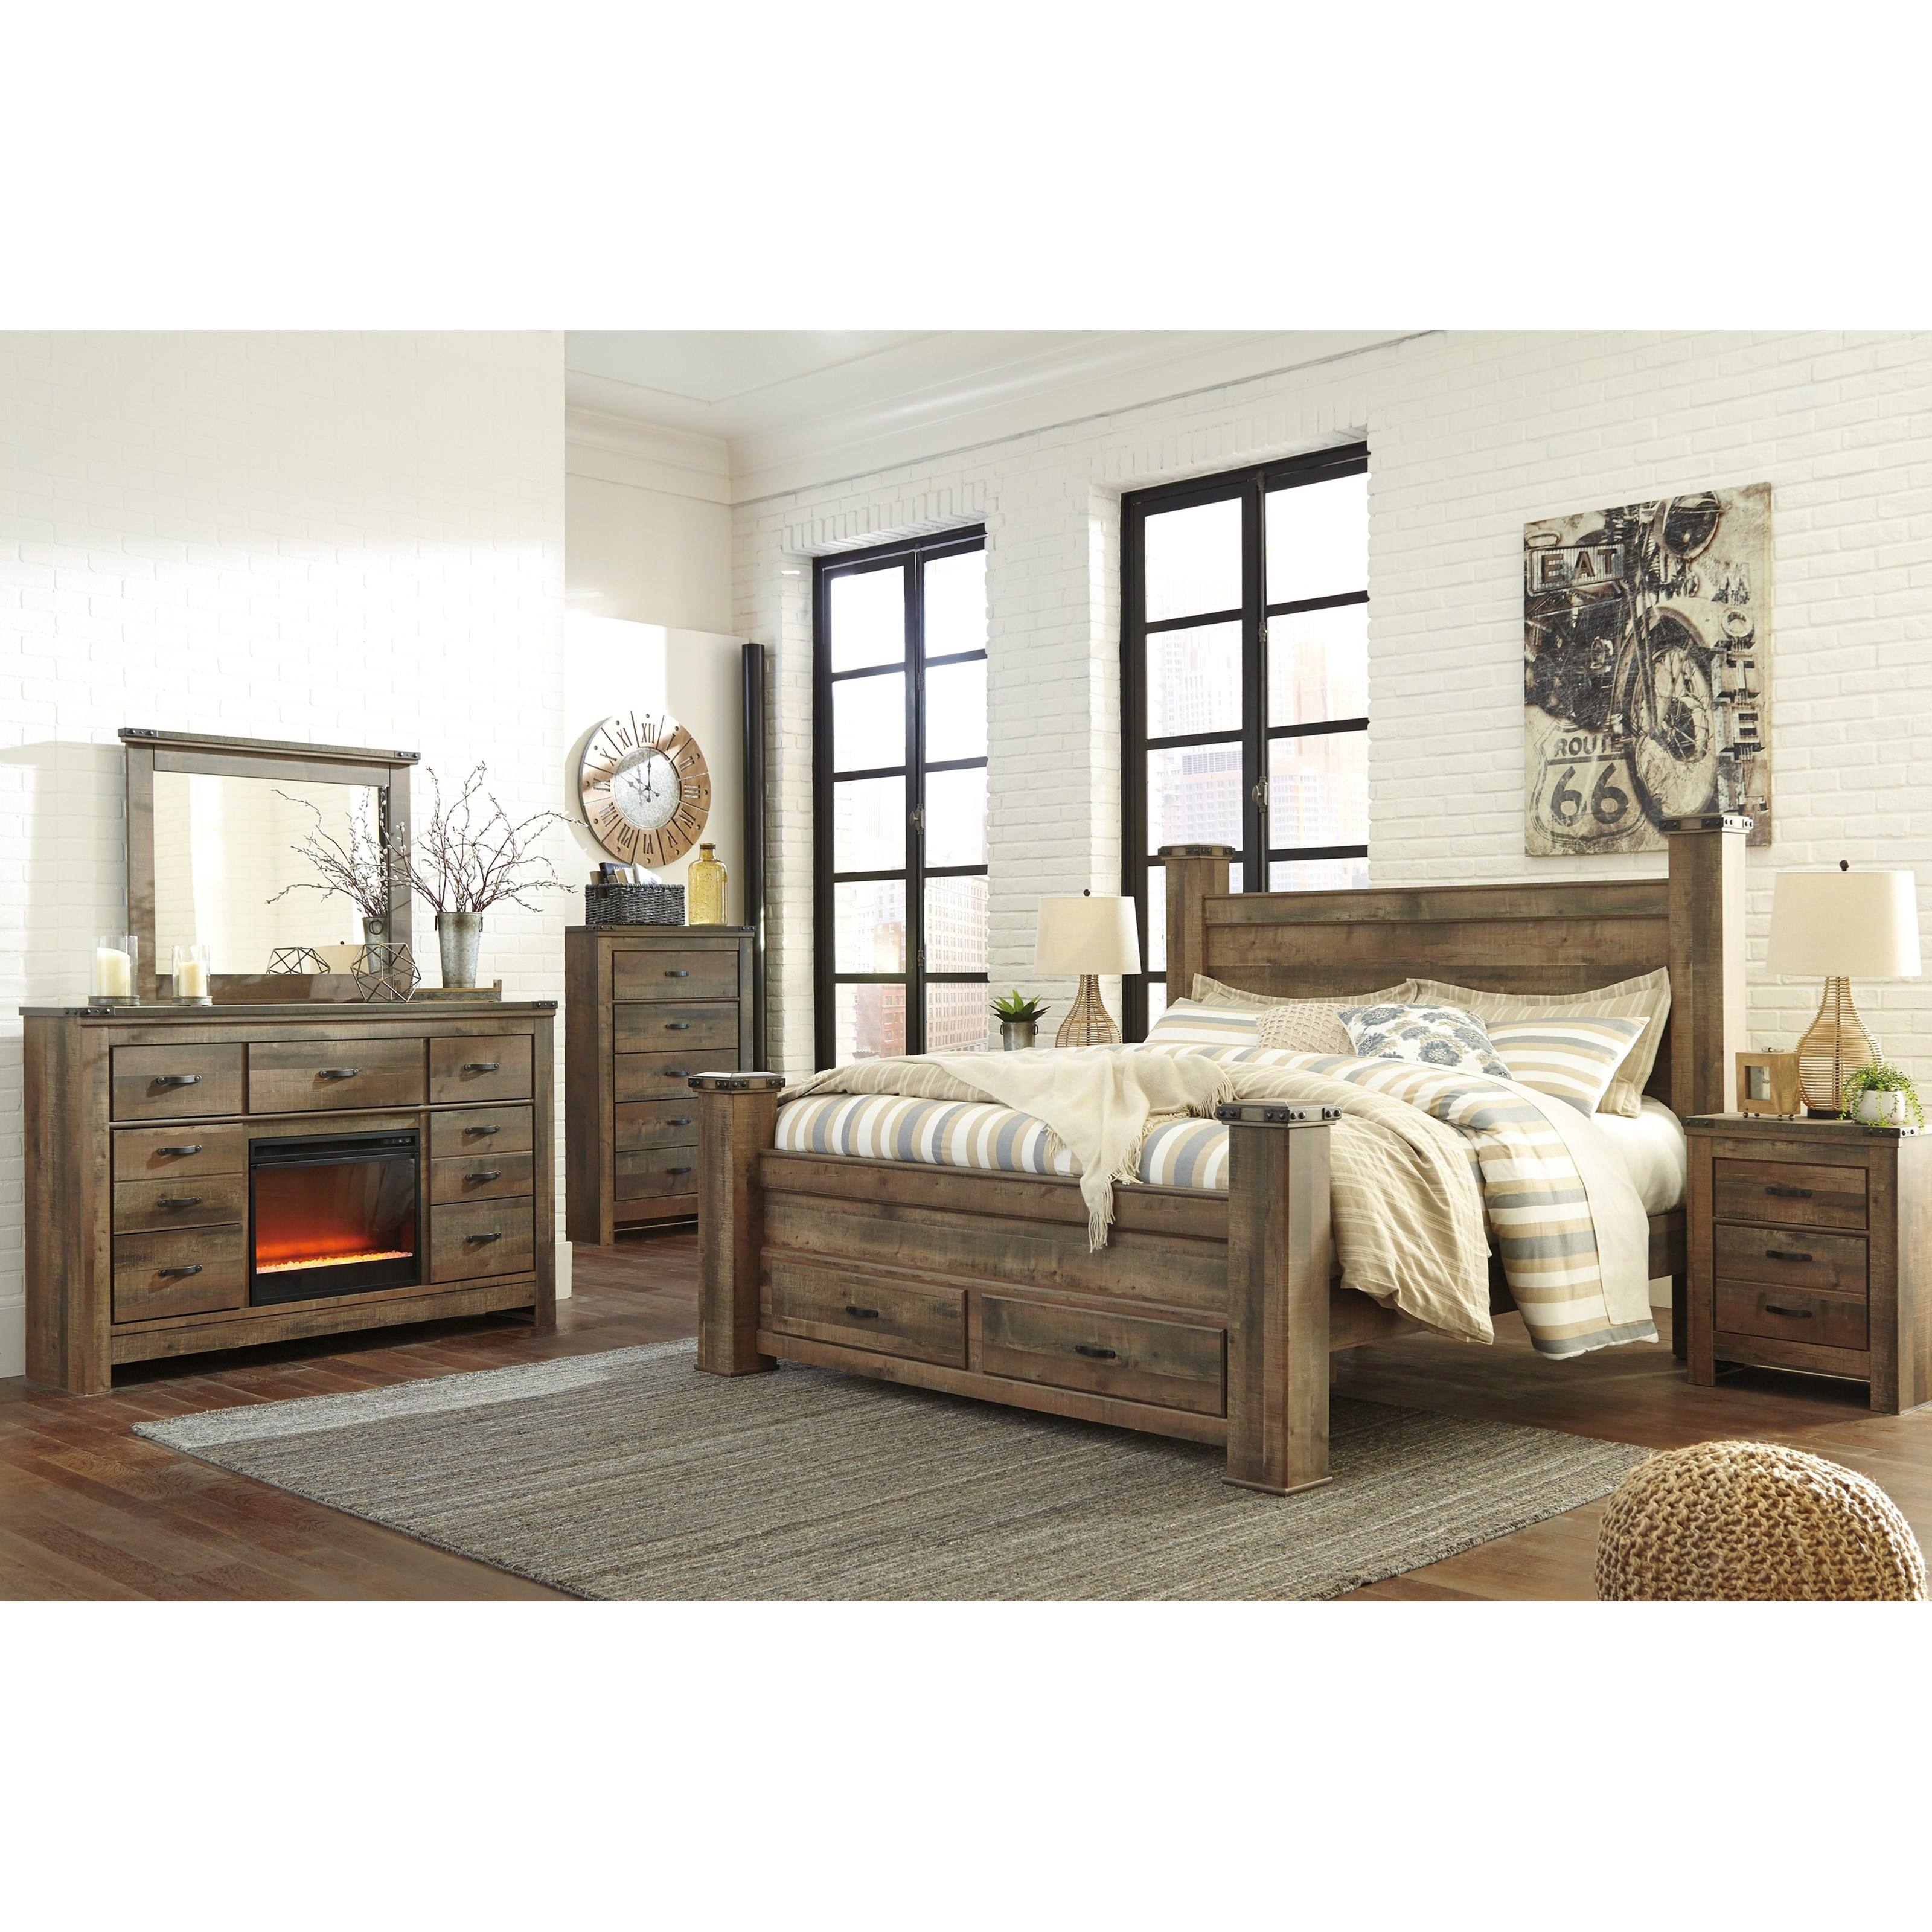 Ashley Furniture Bedroom Furniture: Signature Design By Ashley Trinell King Bedroom Group